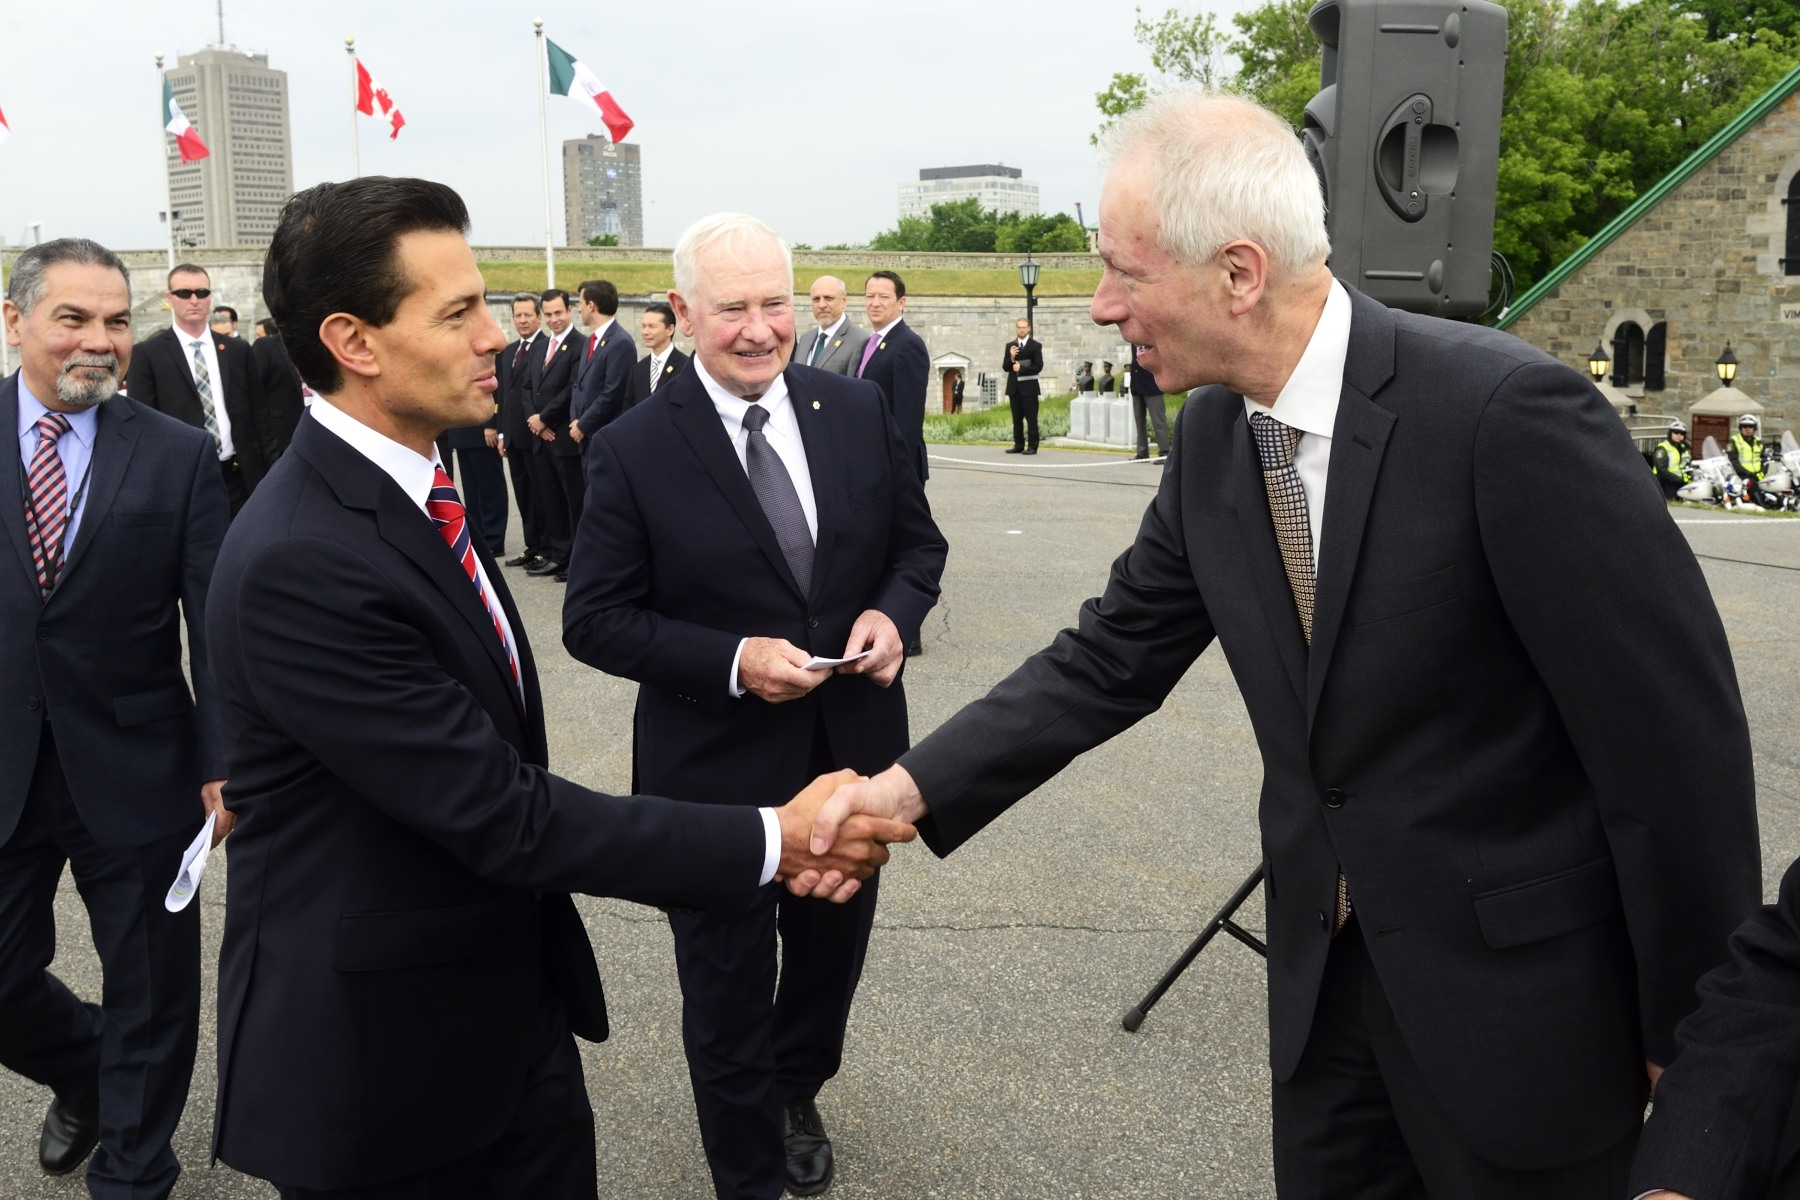 The President of Mexico met with members of the Canadian delegation. He was greeted by Stéphane Dion, Minister of Foreign Affairs.